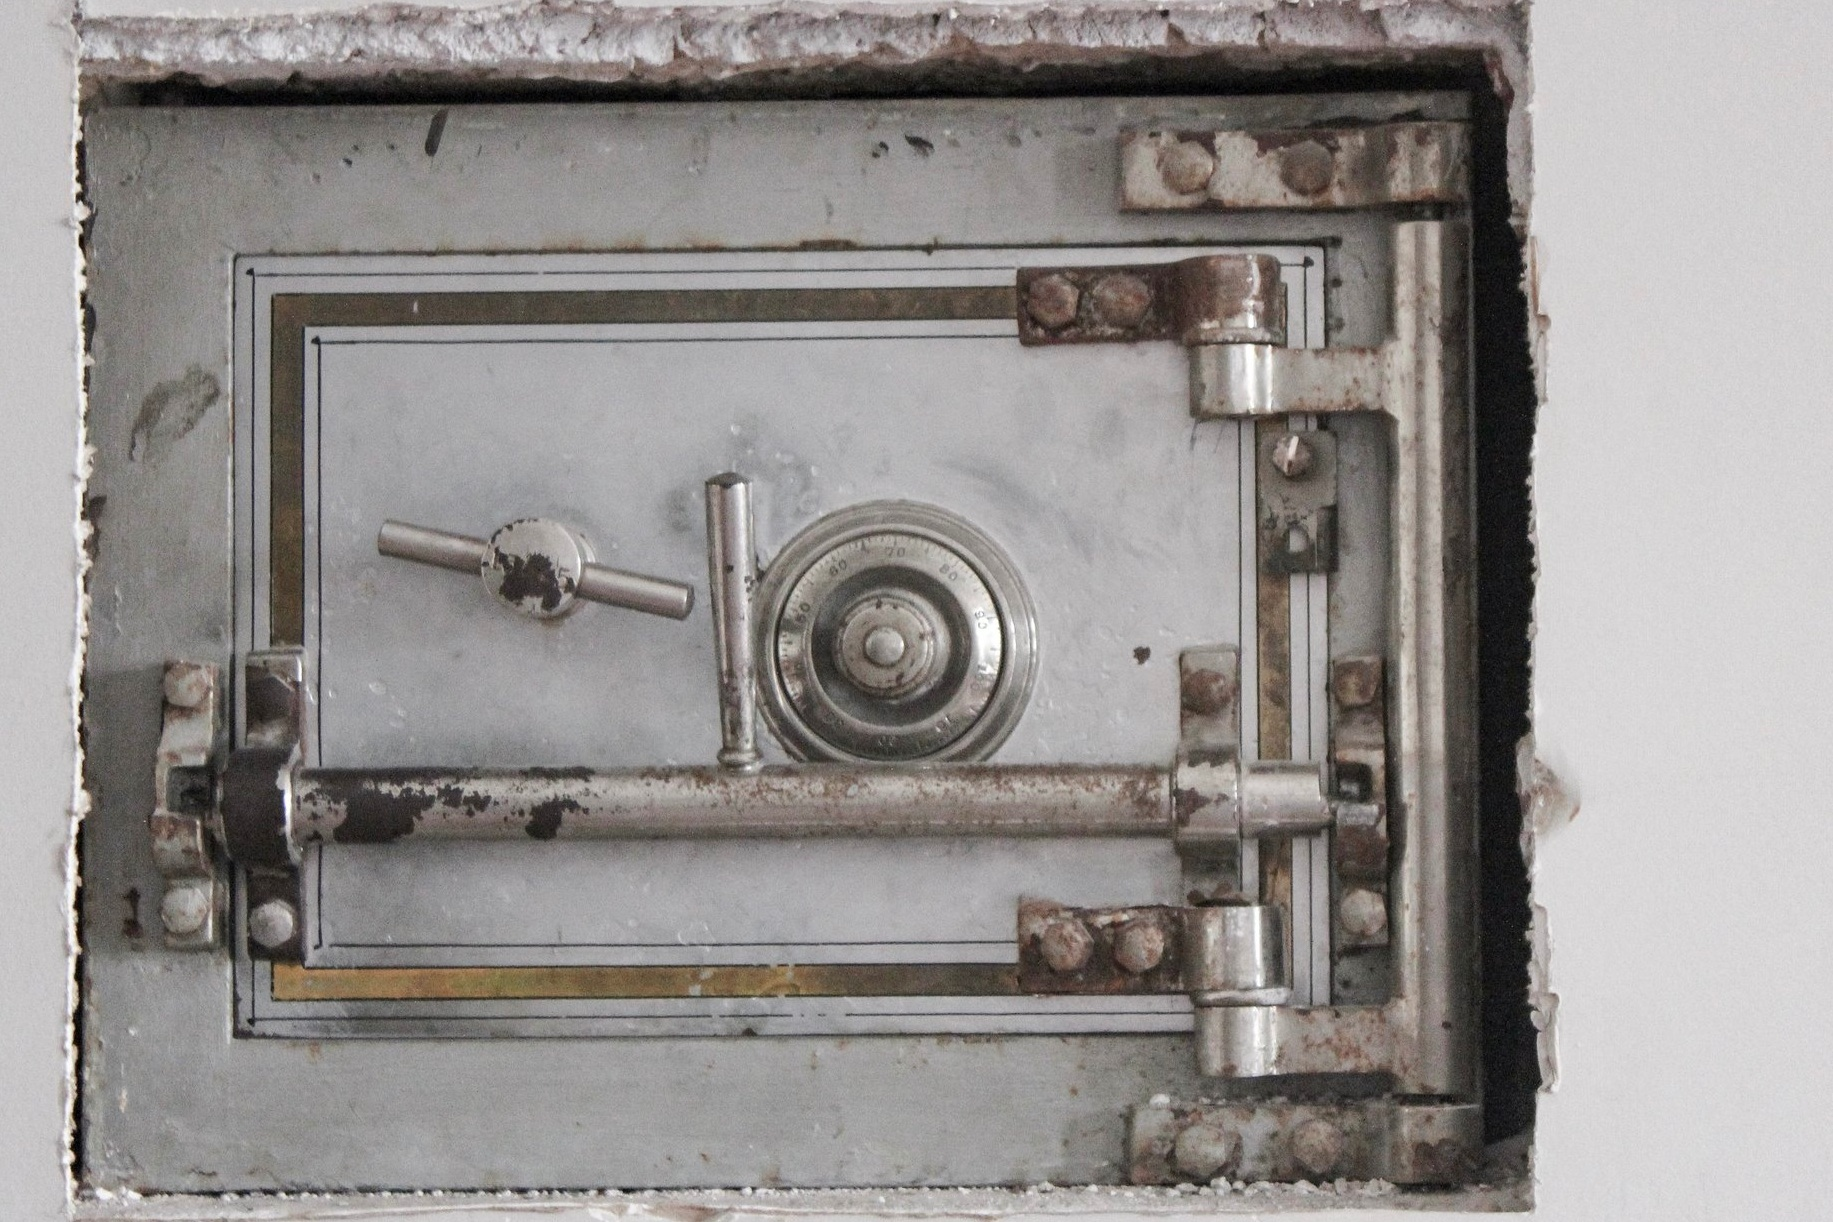 We Lock the Safe - Even if your house burns down or your business floods, The safe will keep your important files protected. With onsite and cloud backup options, even a disaster doesn't have to affect your crucial files.